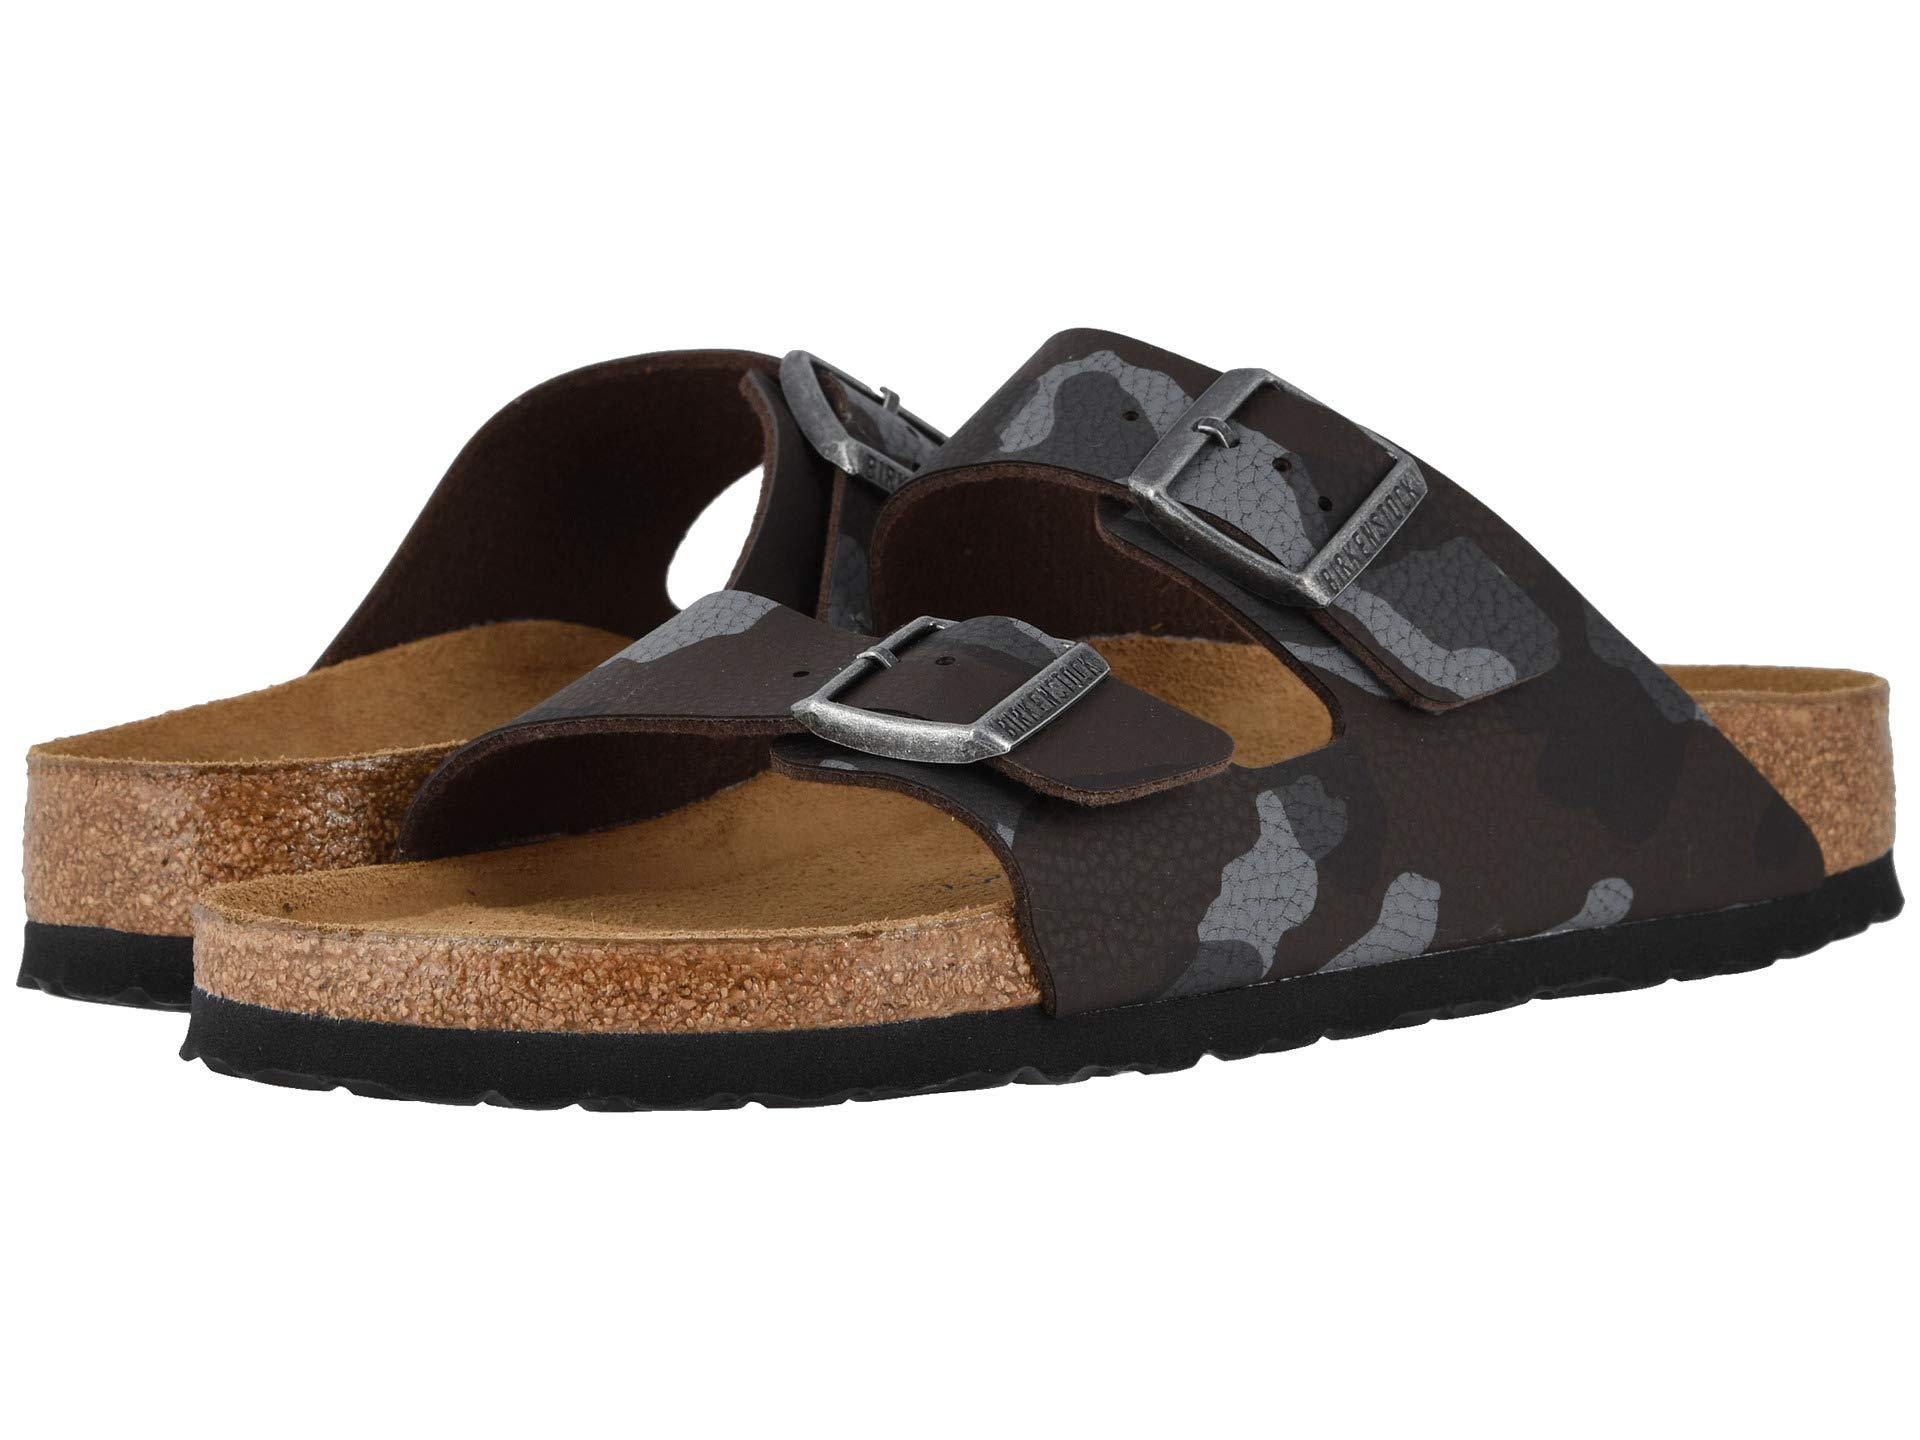 00ca7e2397b1 Lyst - Birkenstock Arizona Soft Footbed (desert Soil Camo Brown ...